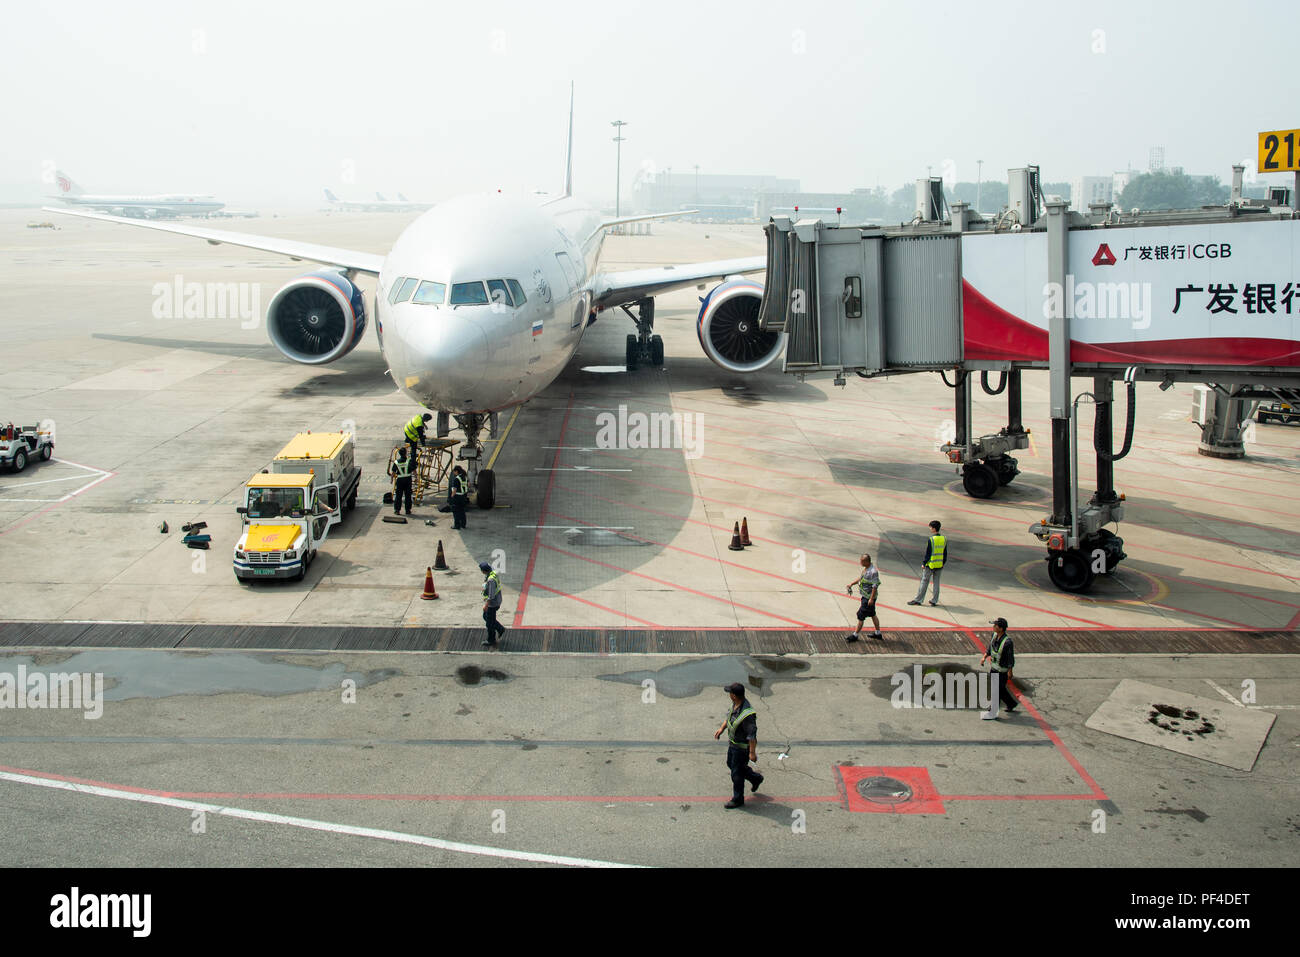 Beijing, China- June 12 2018: Airport engineer staff feeling and servicing an Aeroflot airlines airplane landed on the runway at Beijing capital Inter - Stock Image